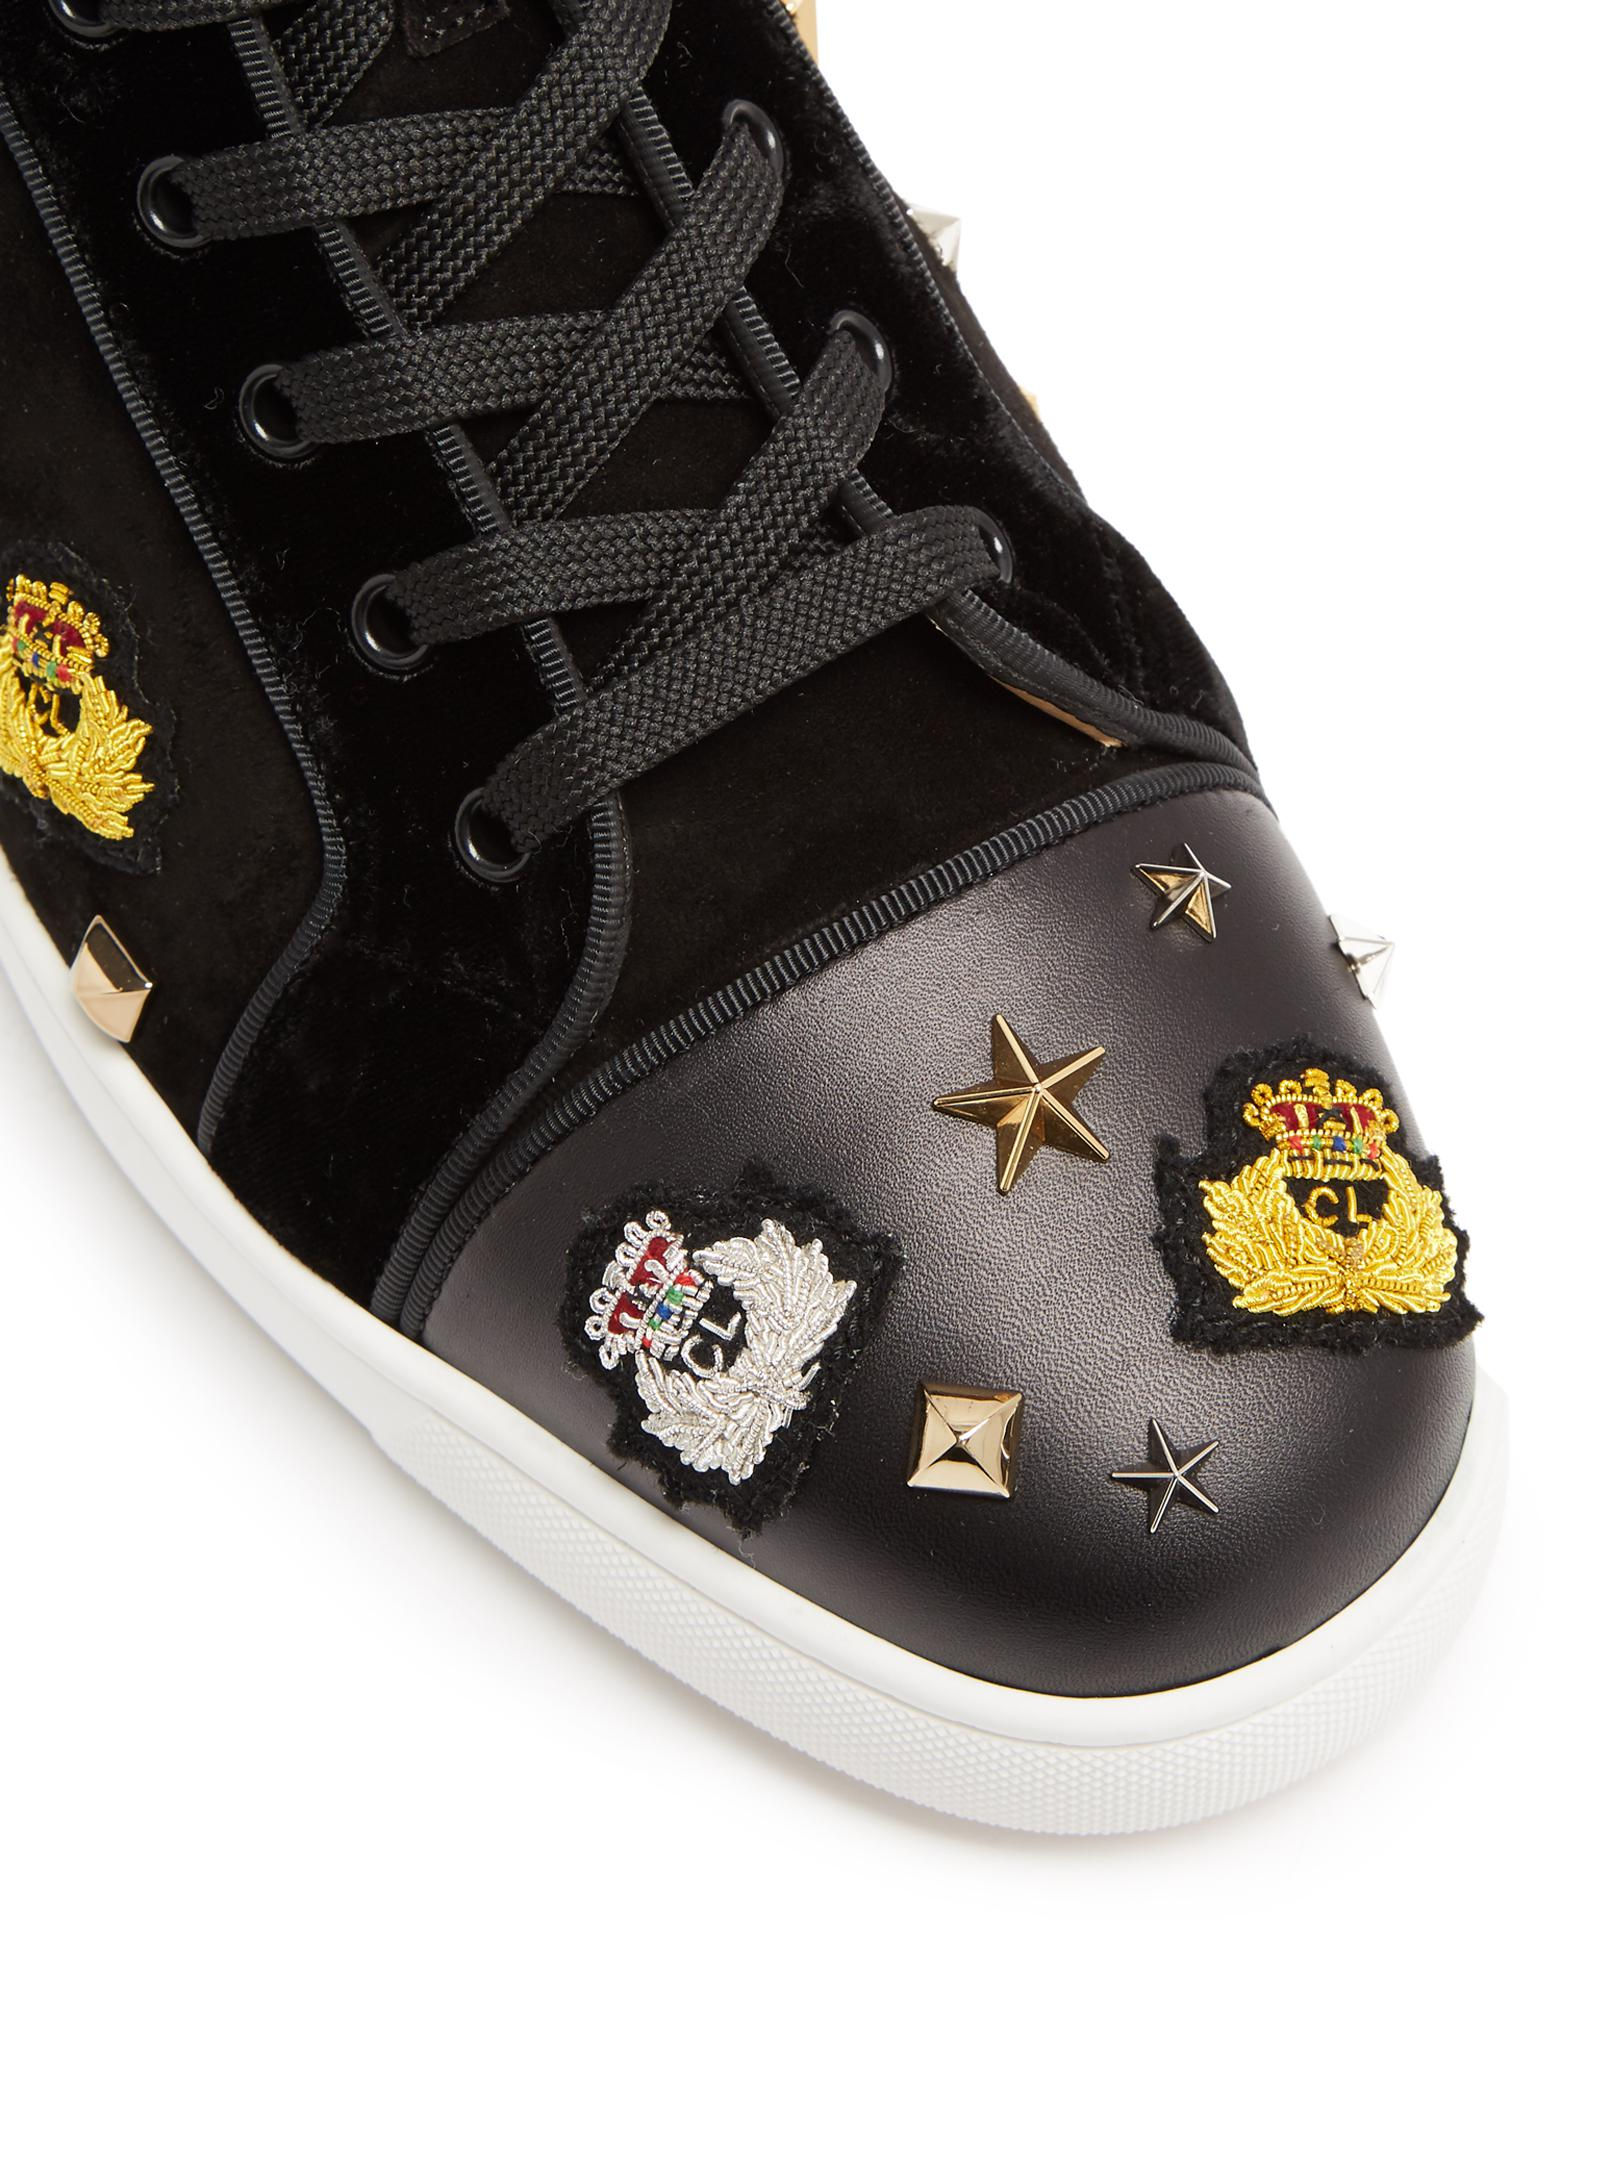 640c322f755 Christian Louboutin Black Loubacademia Embellished High-top Suede Trainers  for men